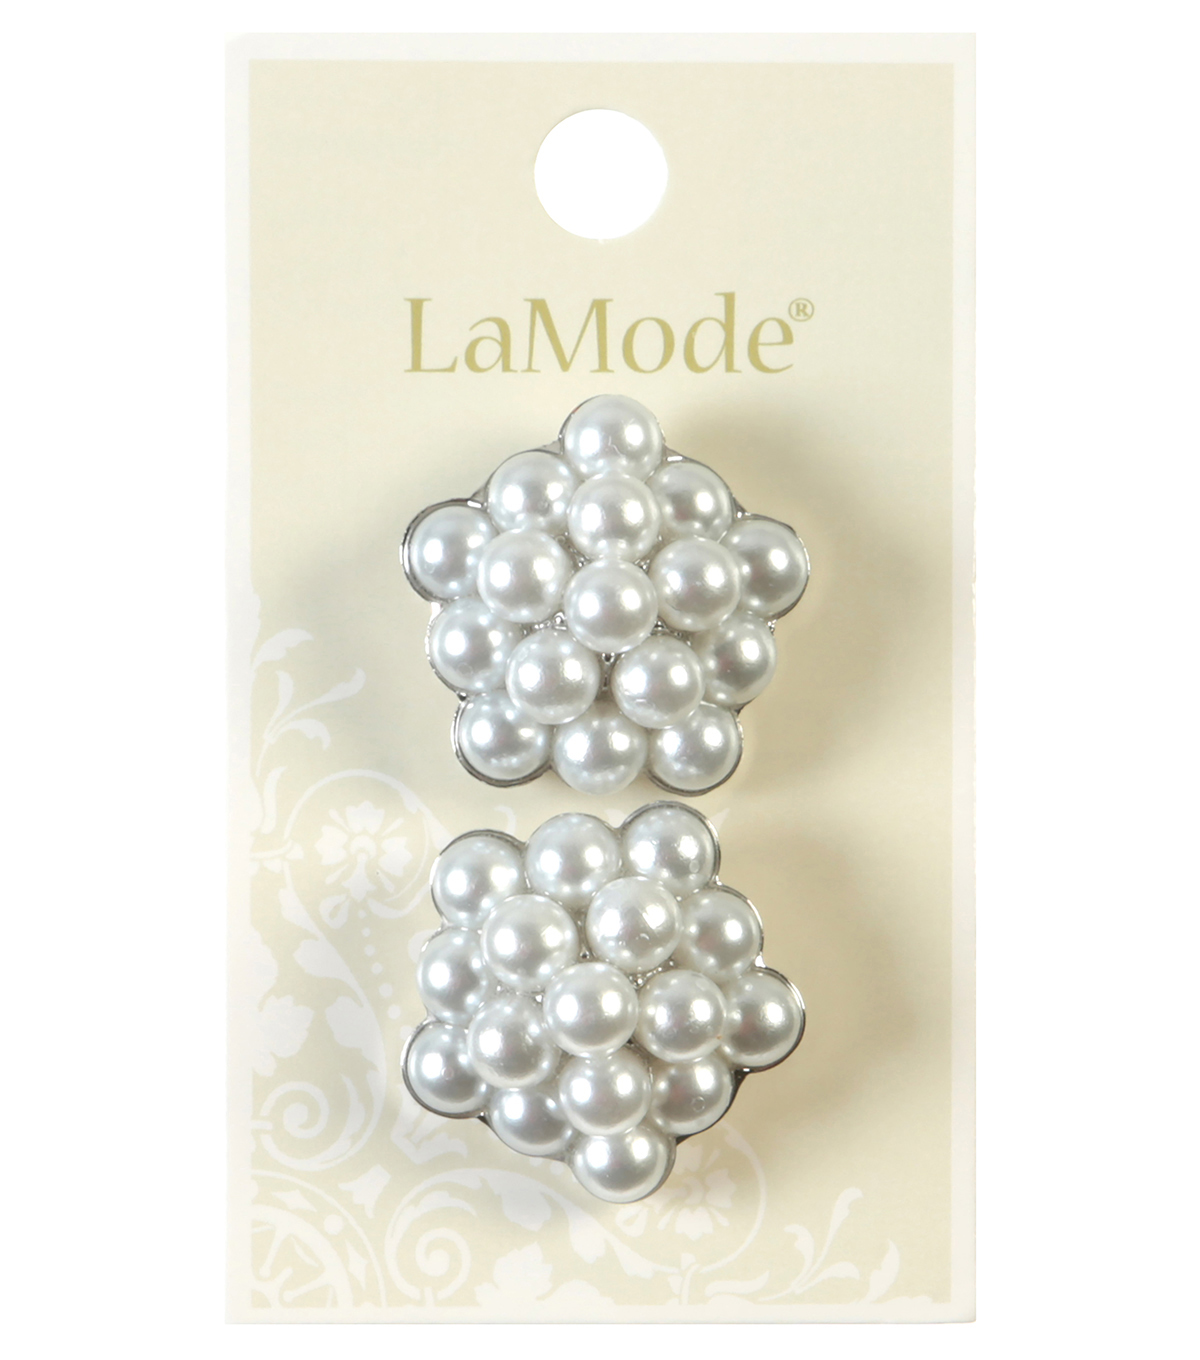 LaMode Pearl Cluster Button